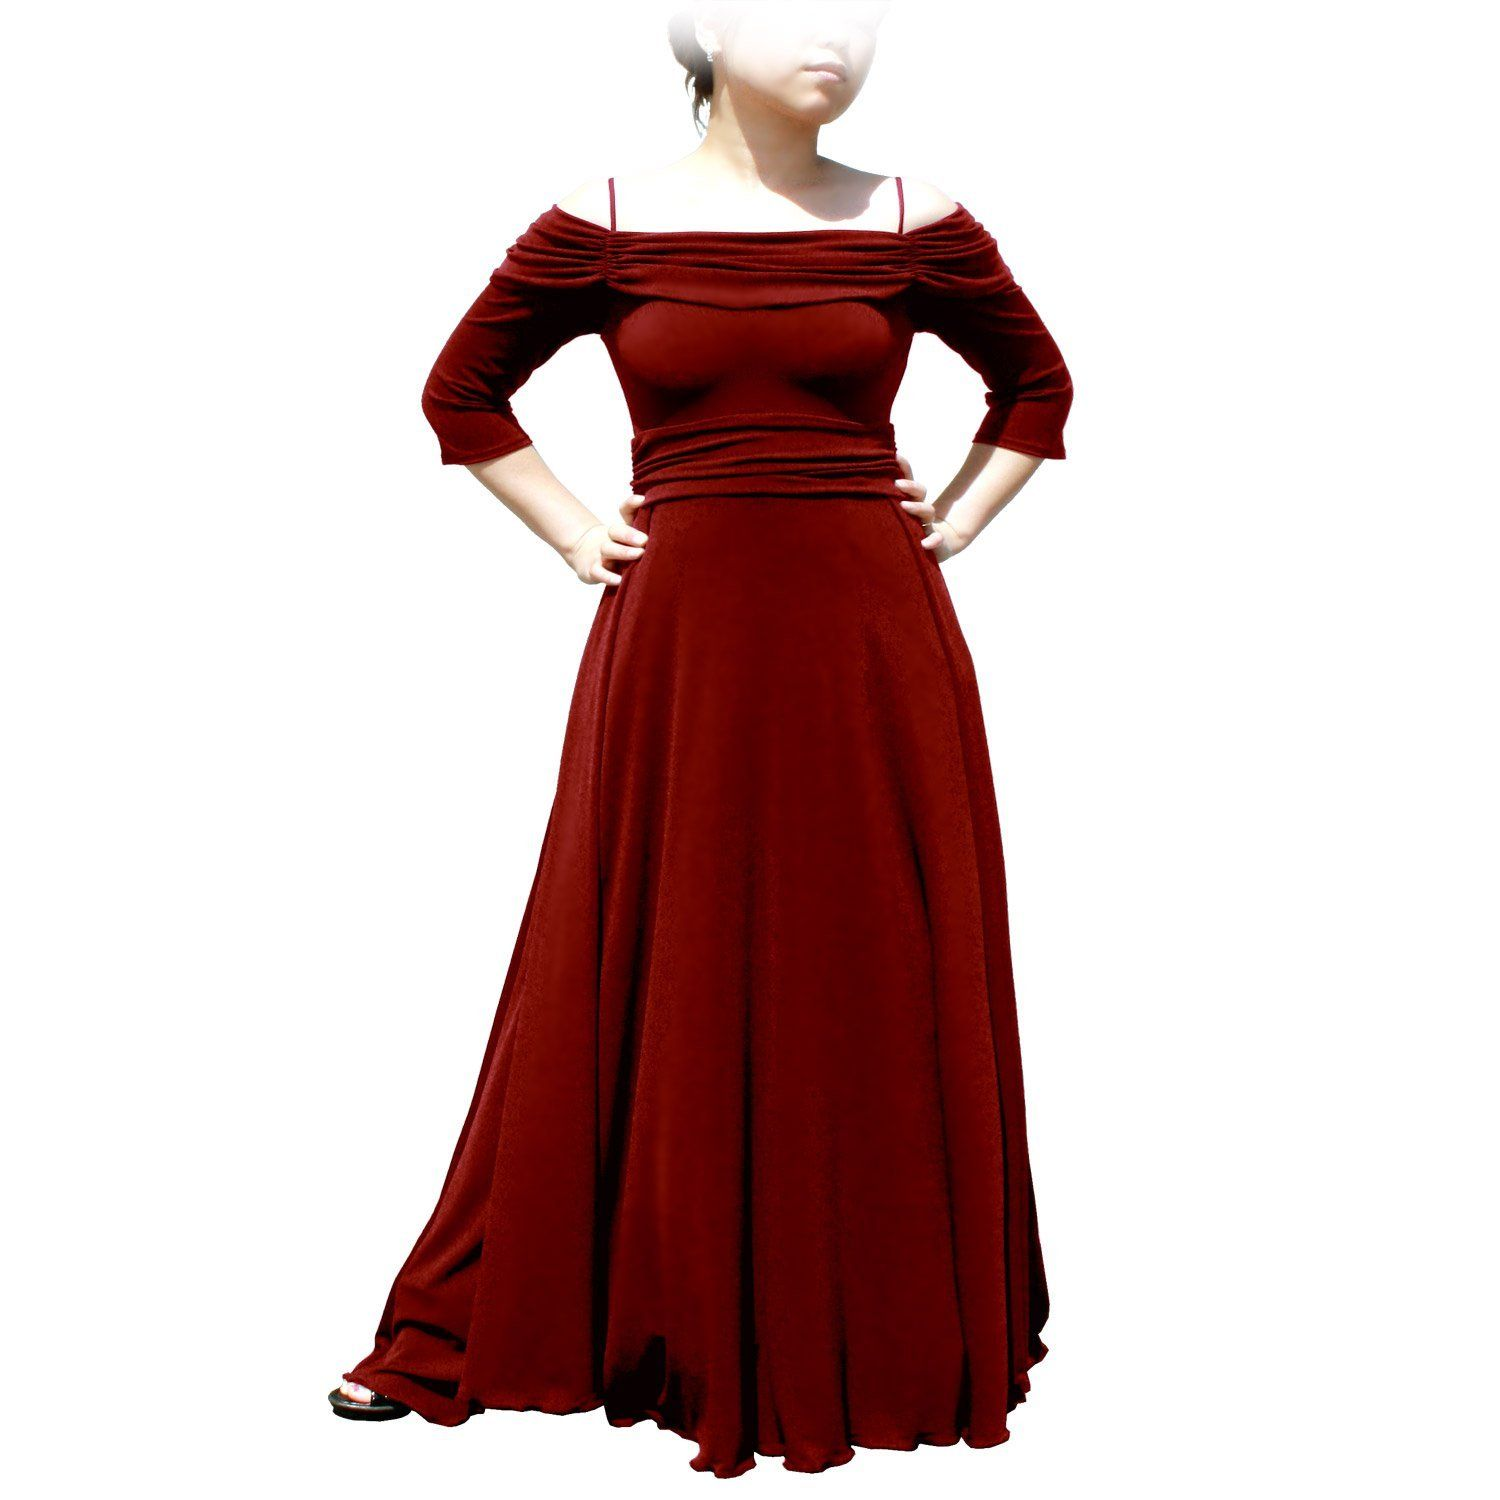 Evanese womenus plus size dress with sleeves and side flare